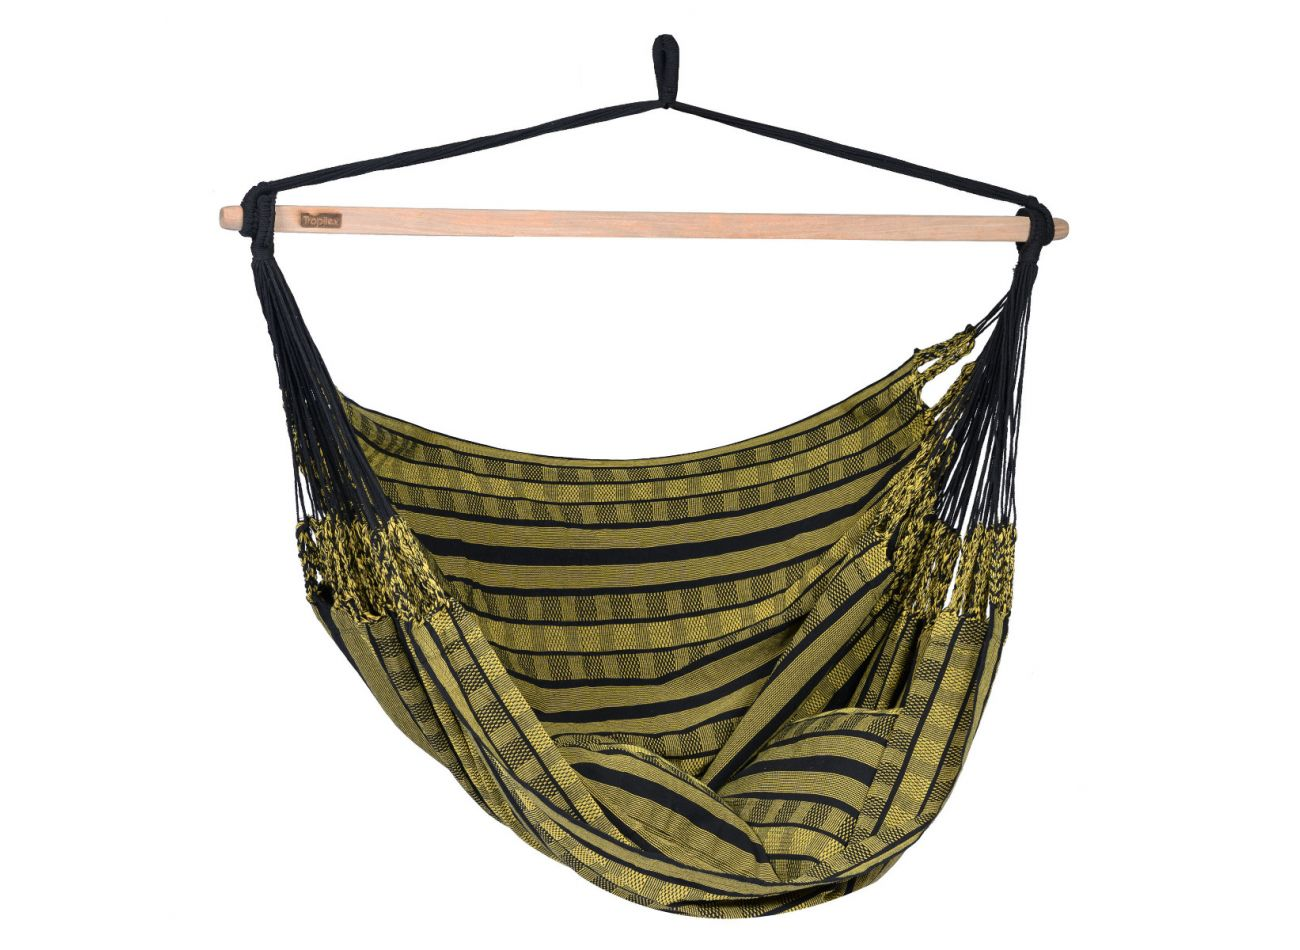 Hanging Chair 2 Persons Black Edition Gold